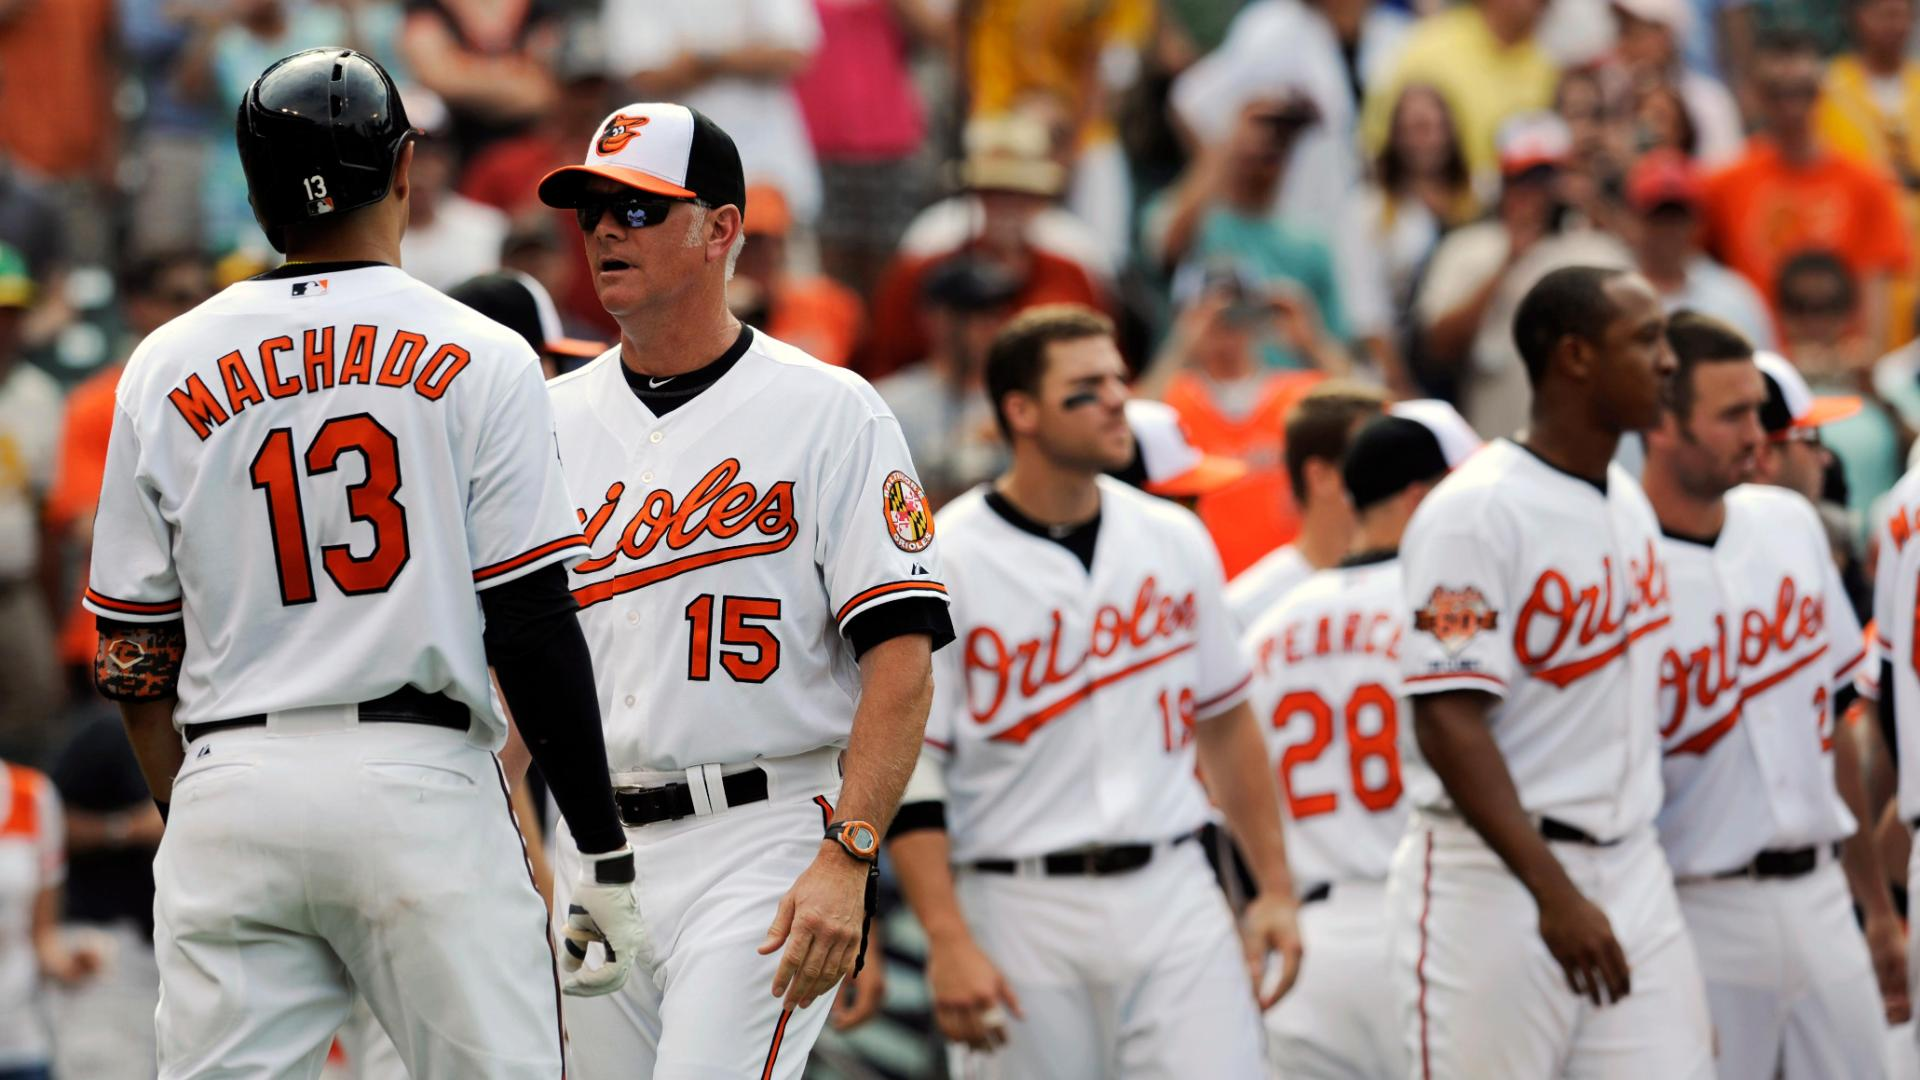 http://a.espncdn.com/media/motion/2014/0608/dm_140608_mlb_athletics_orioles1345/dm_140608_mlb_athletics_orioles1345.jpg